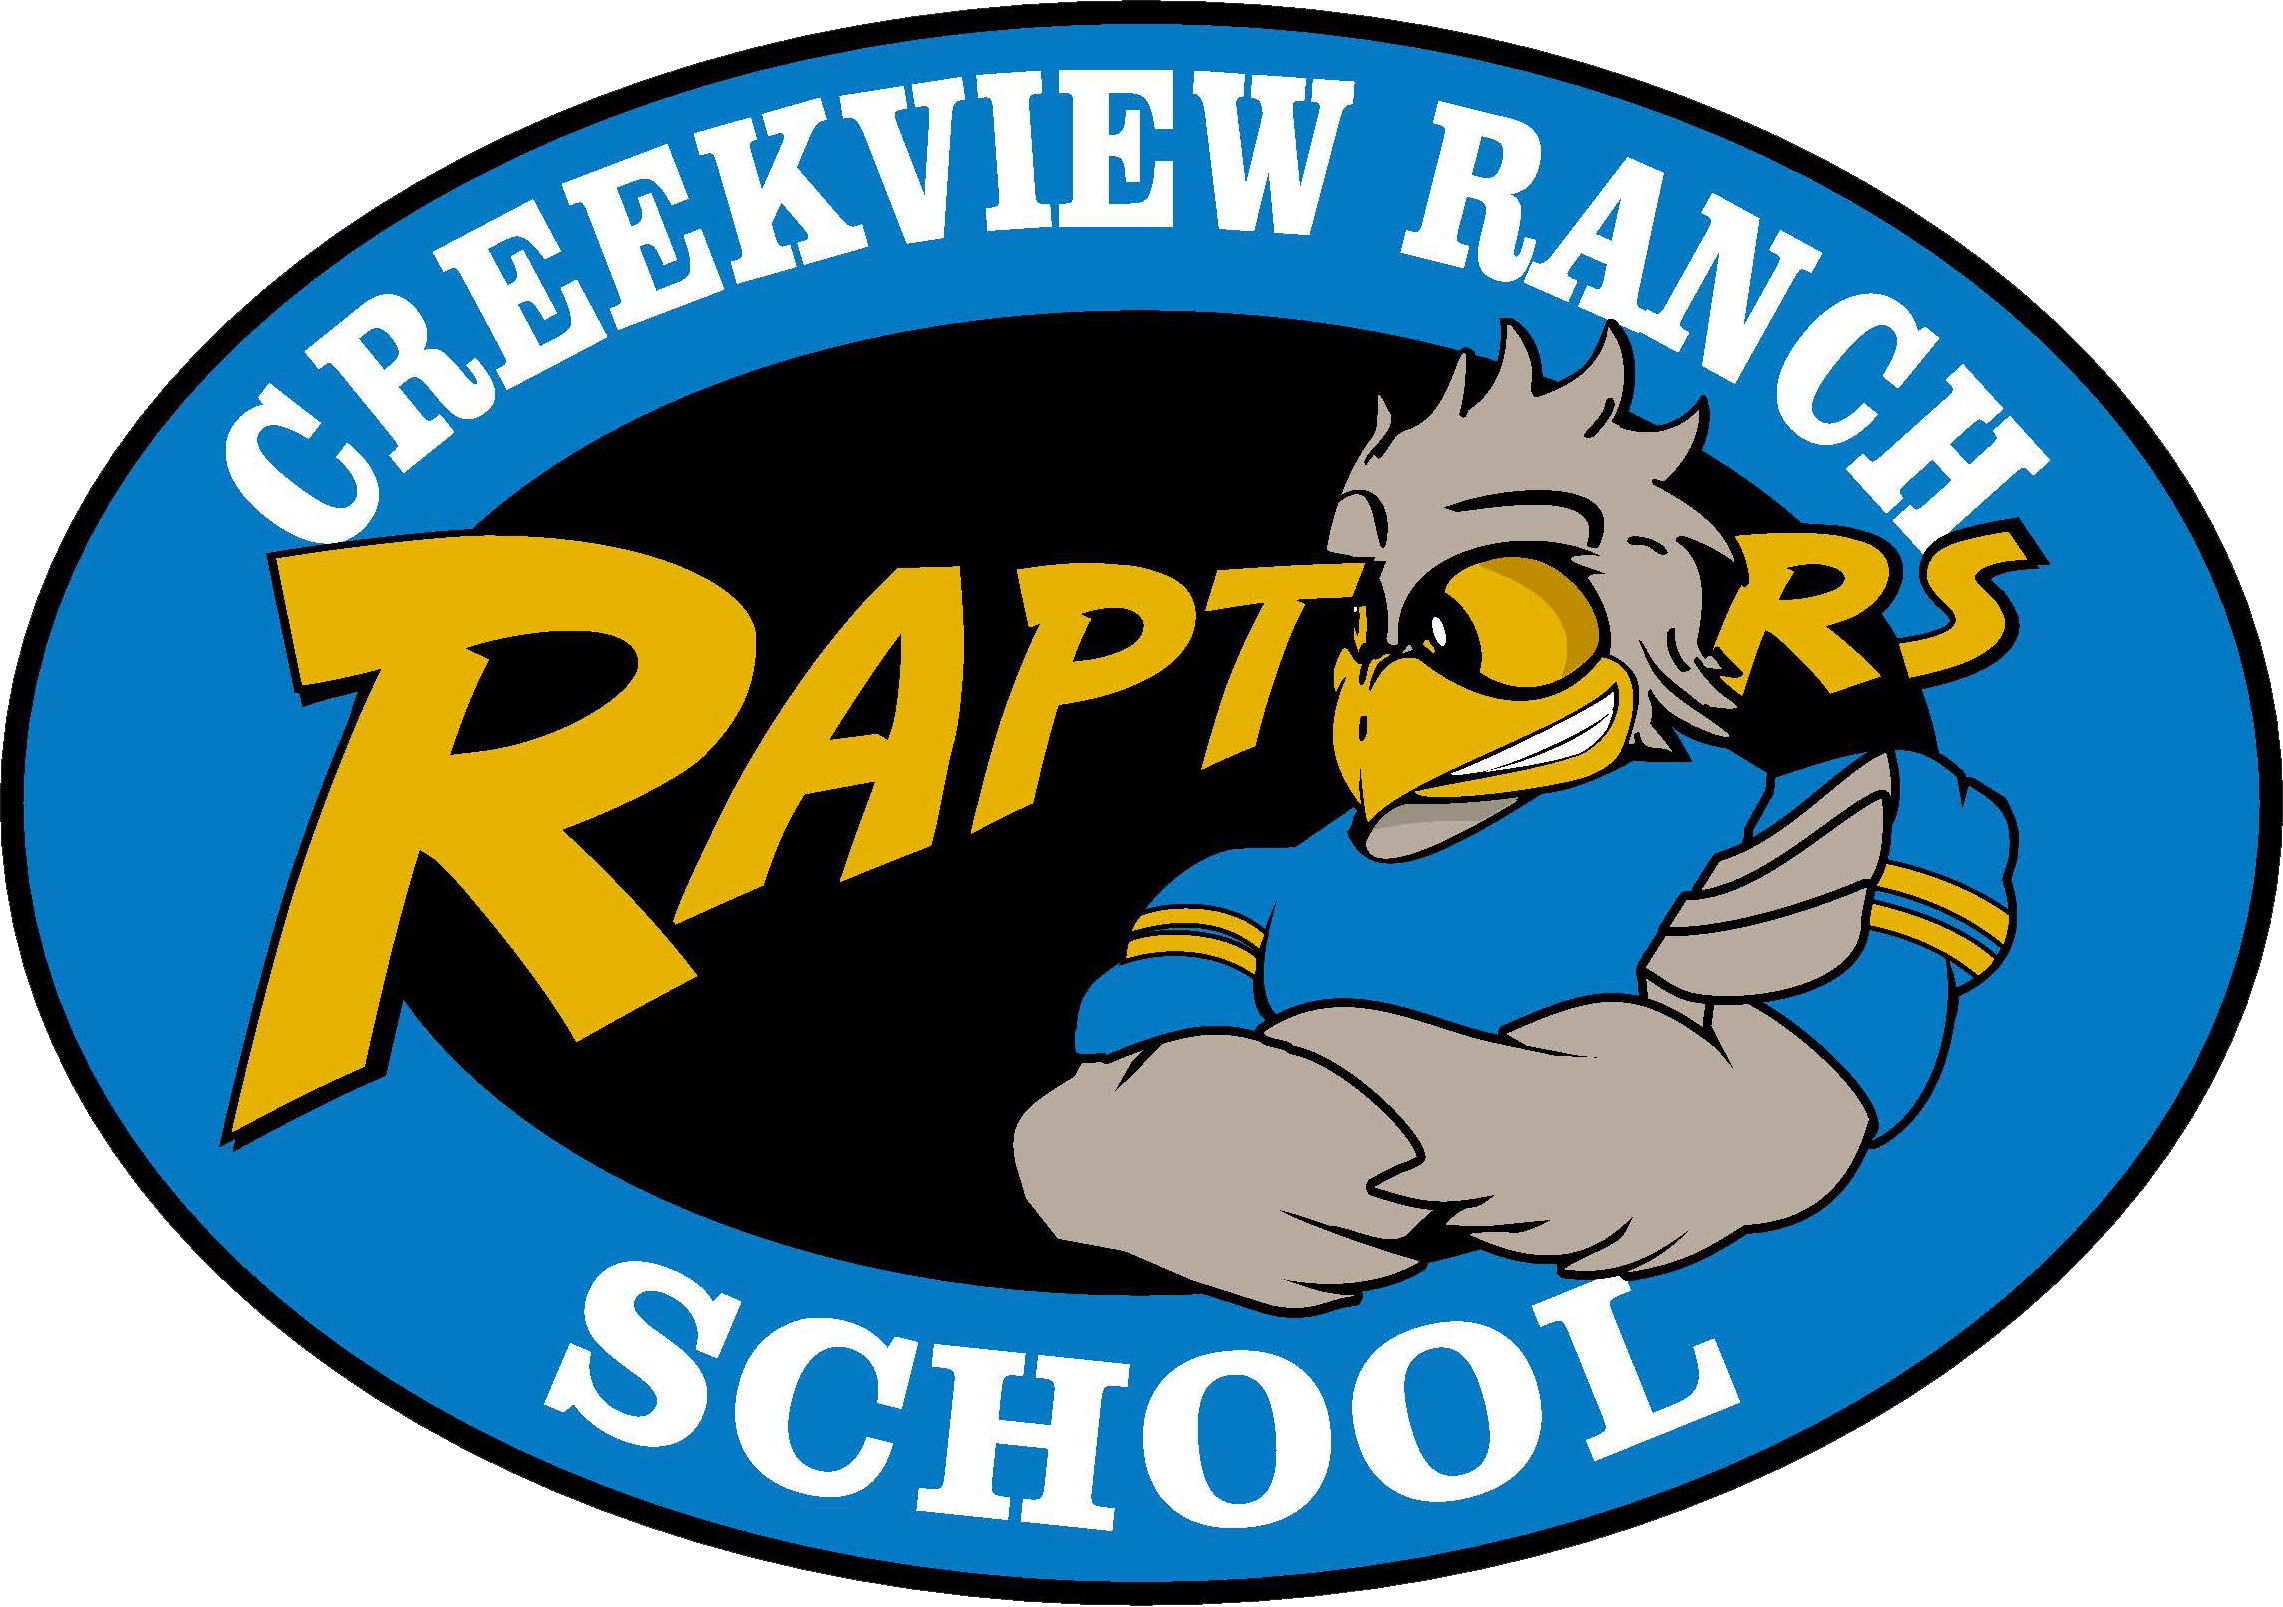 Creekview Ranch logo